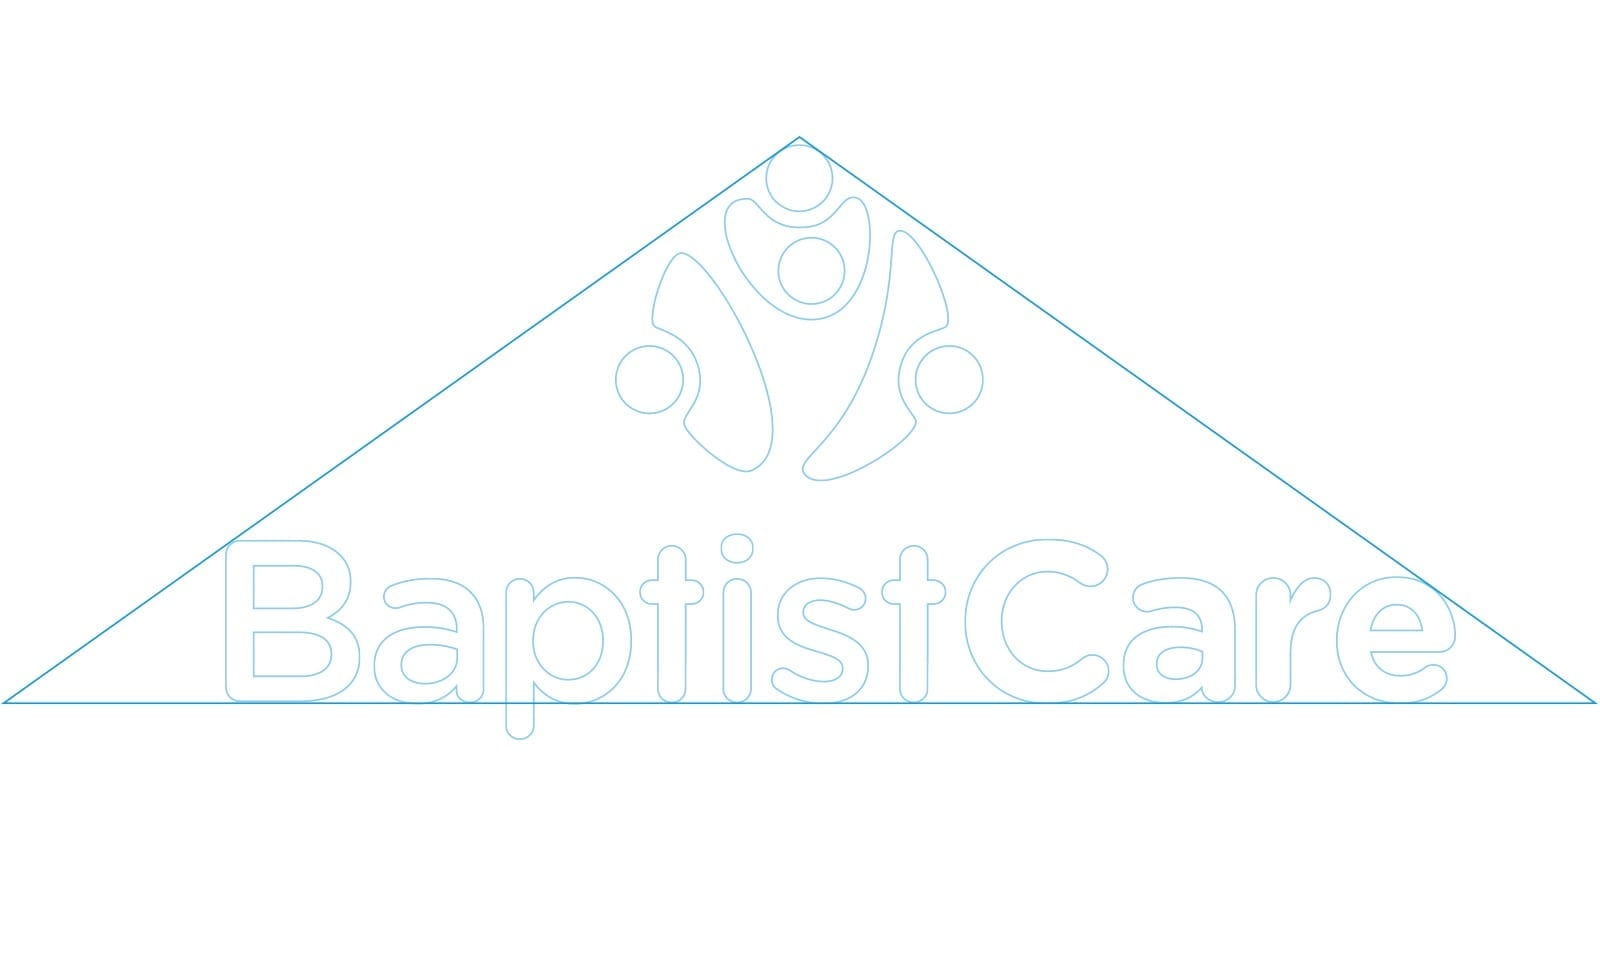 Sydney identity specialist, BaptistCare masterbrand brand structure.